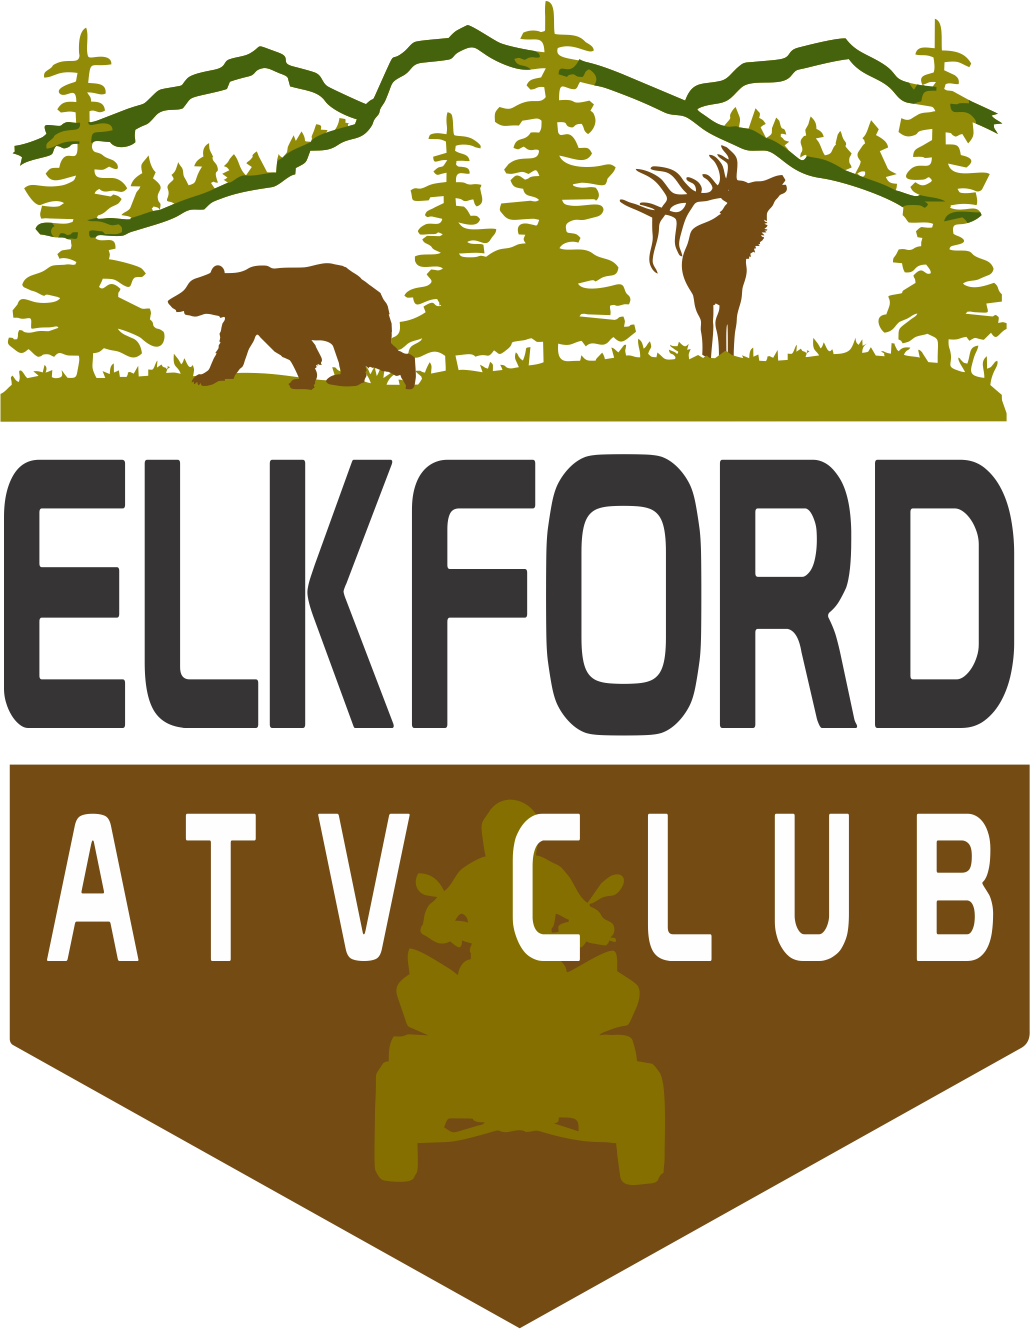 elkford atv club.png